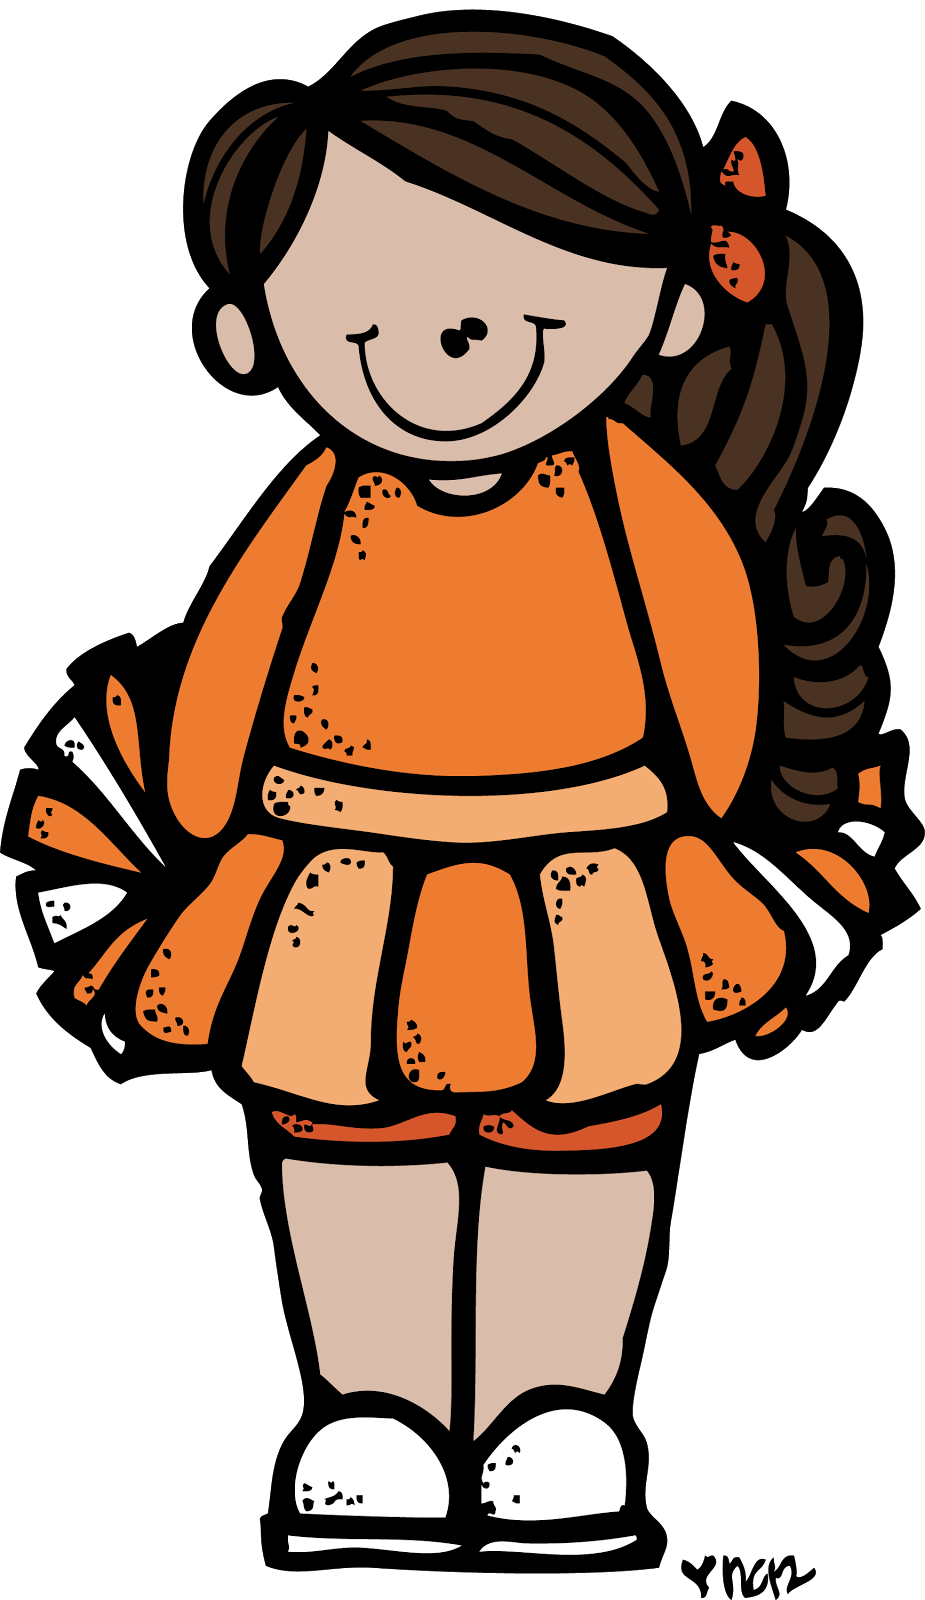 graphic free download Melonheadz colored png melonheads. Cheerleader clipart file.